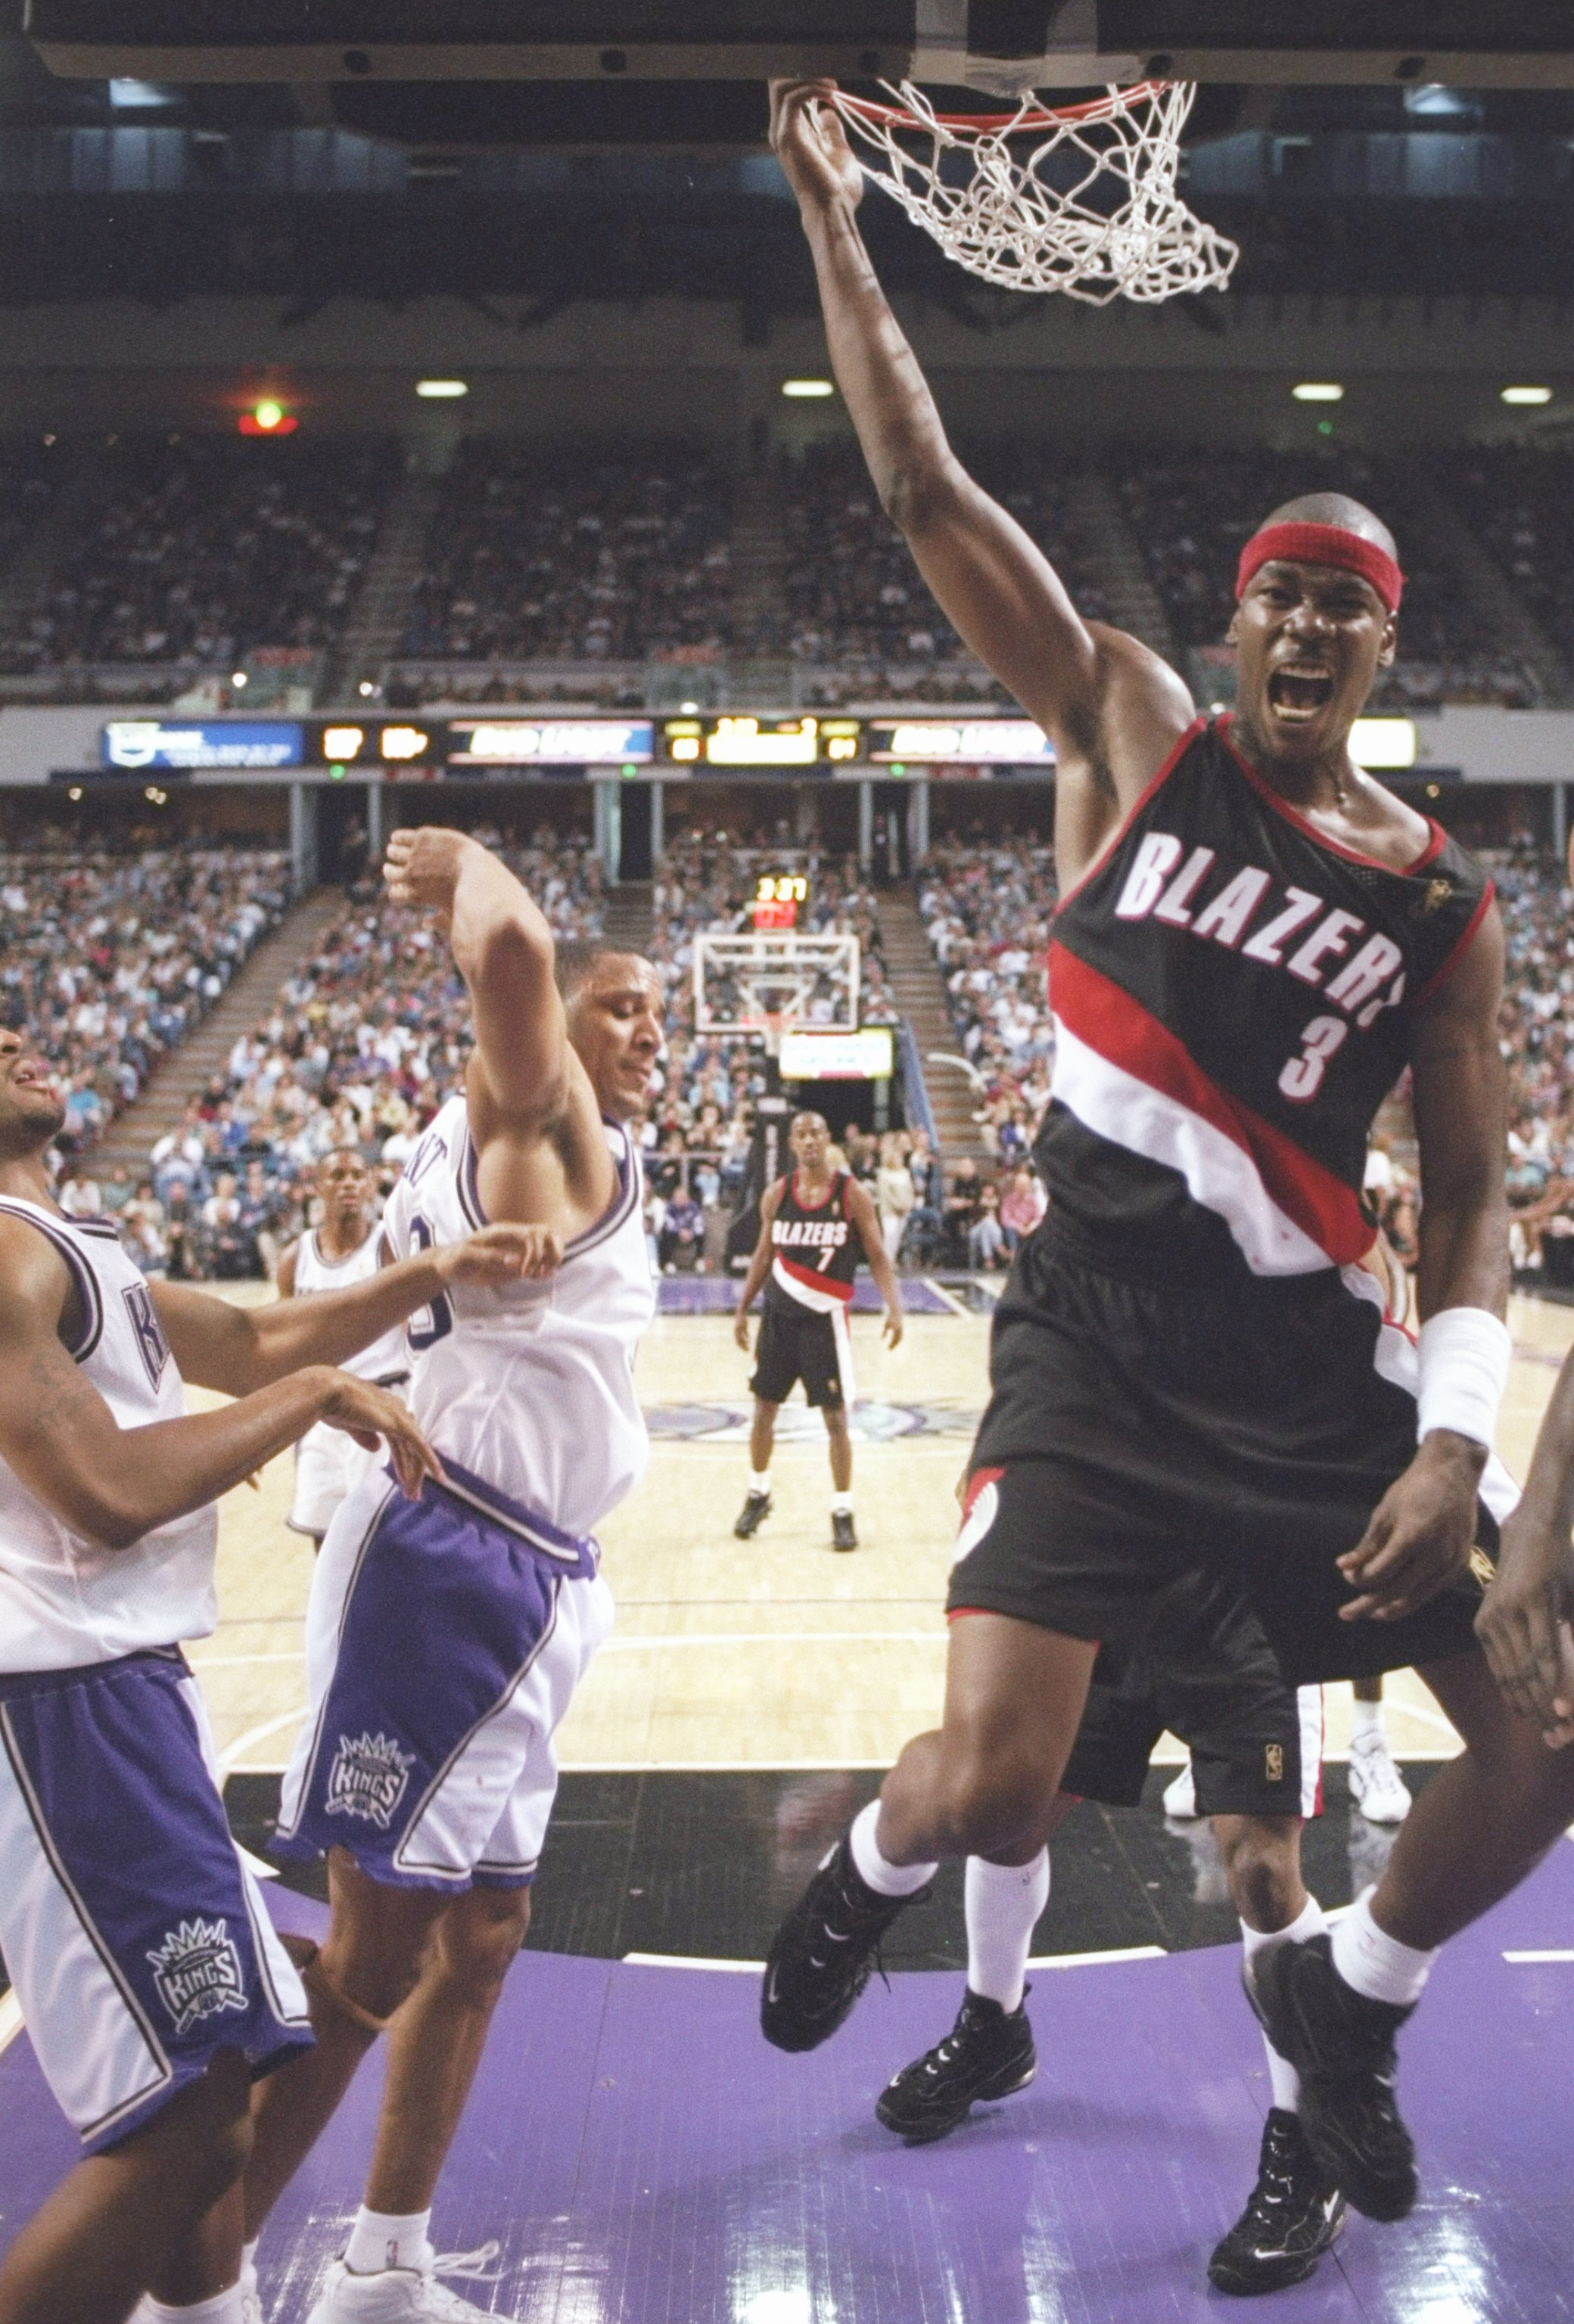 Former All Star Cliff Robinson To Open Marijuana Business